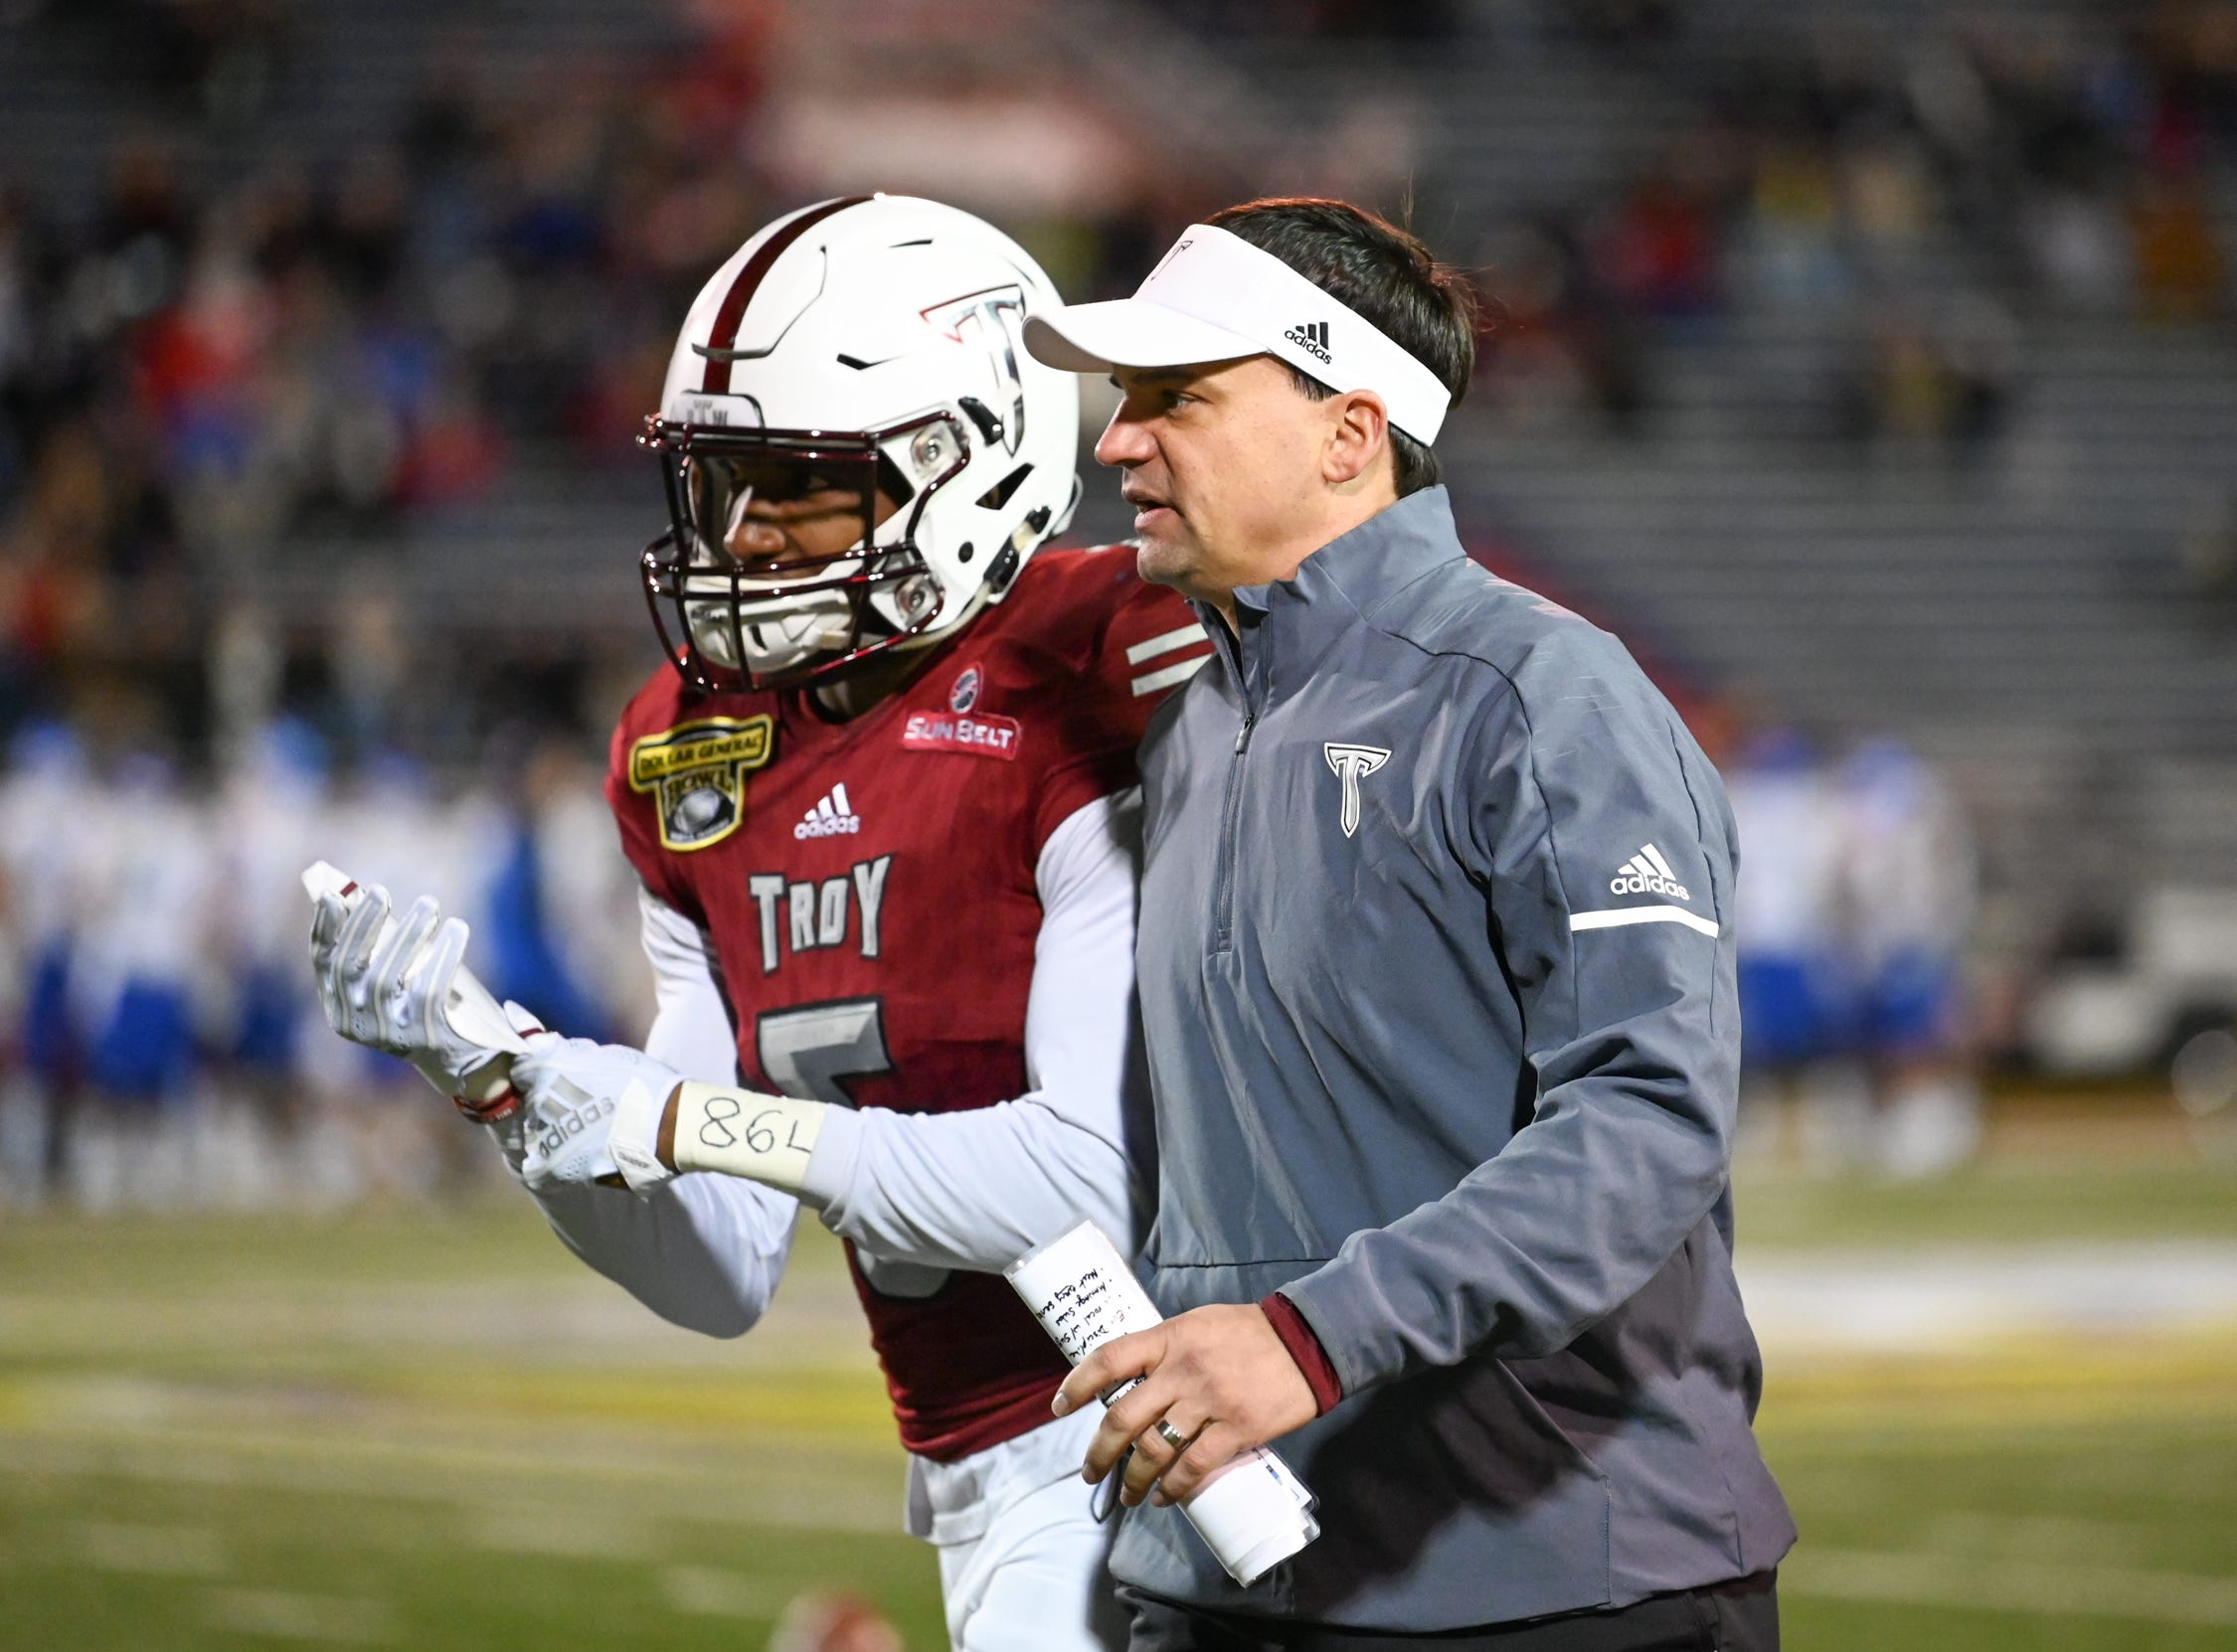 Troy head coach Neal Brown talks with Troy Trojans running back Jabir Daughtry-Frye (5) during the Dollar General Bowl held at Ladd-Peebles Stadium in Mobile on Saturday, Dec. 22, 2018.